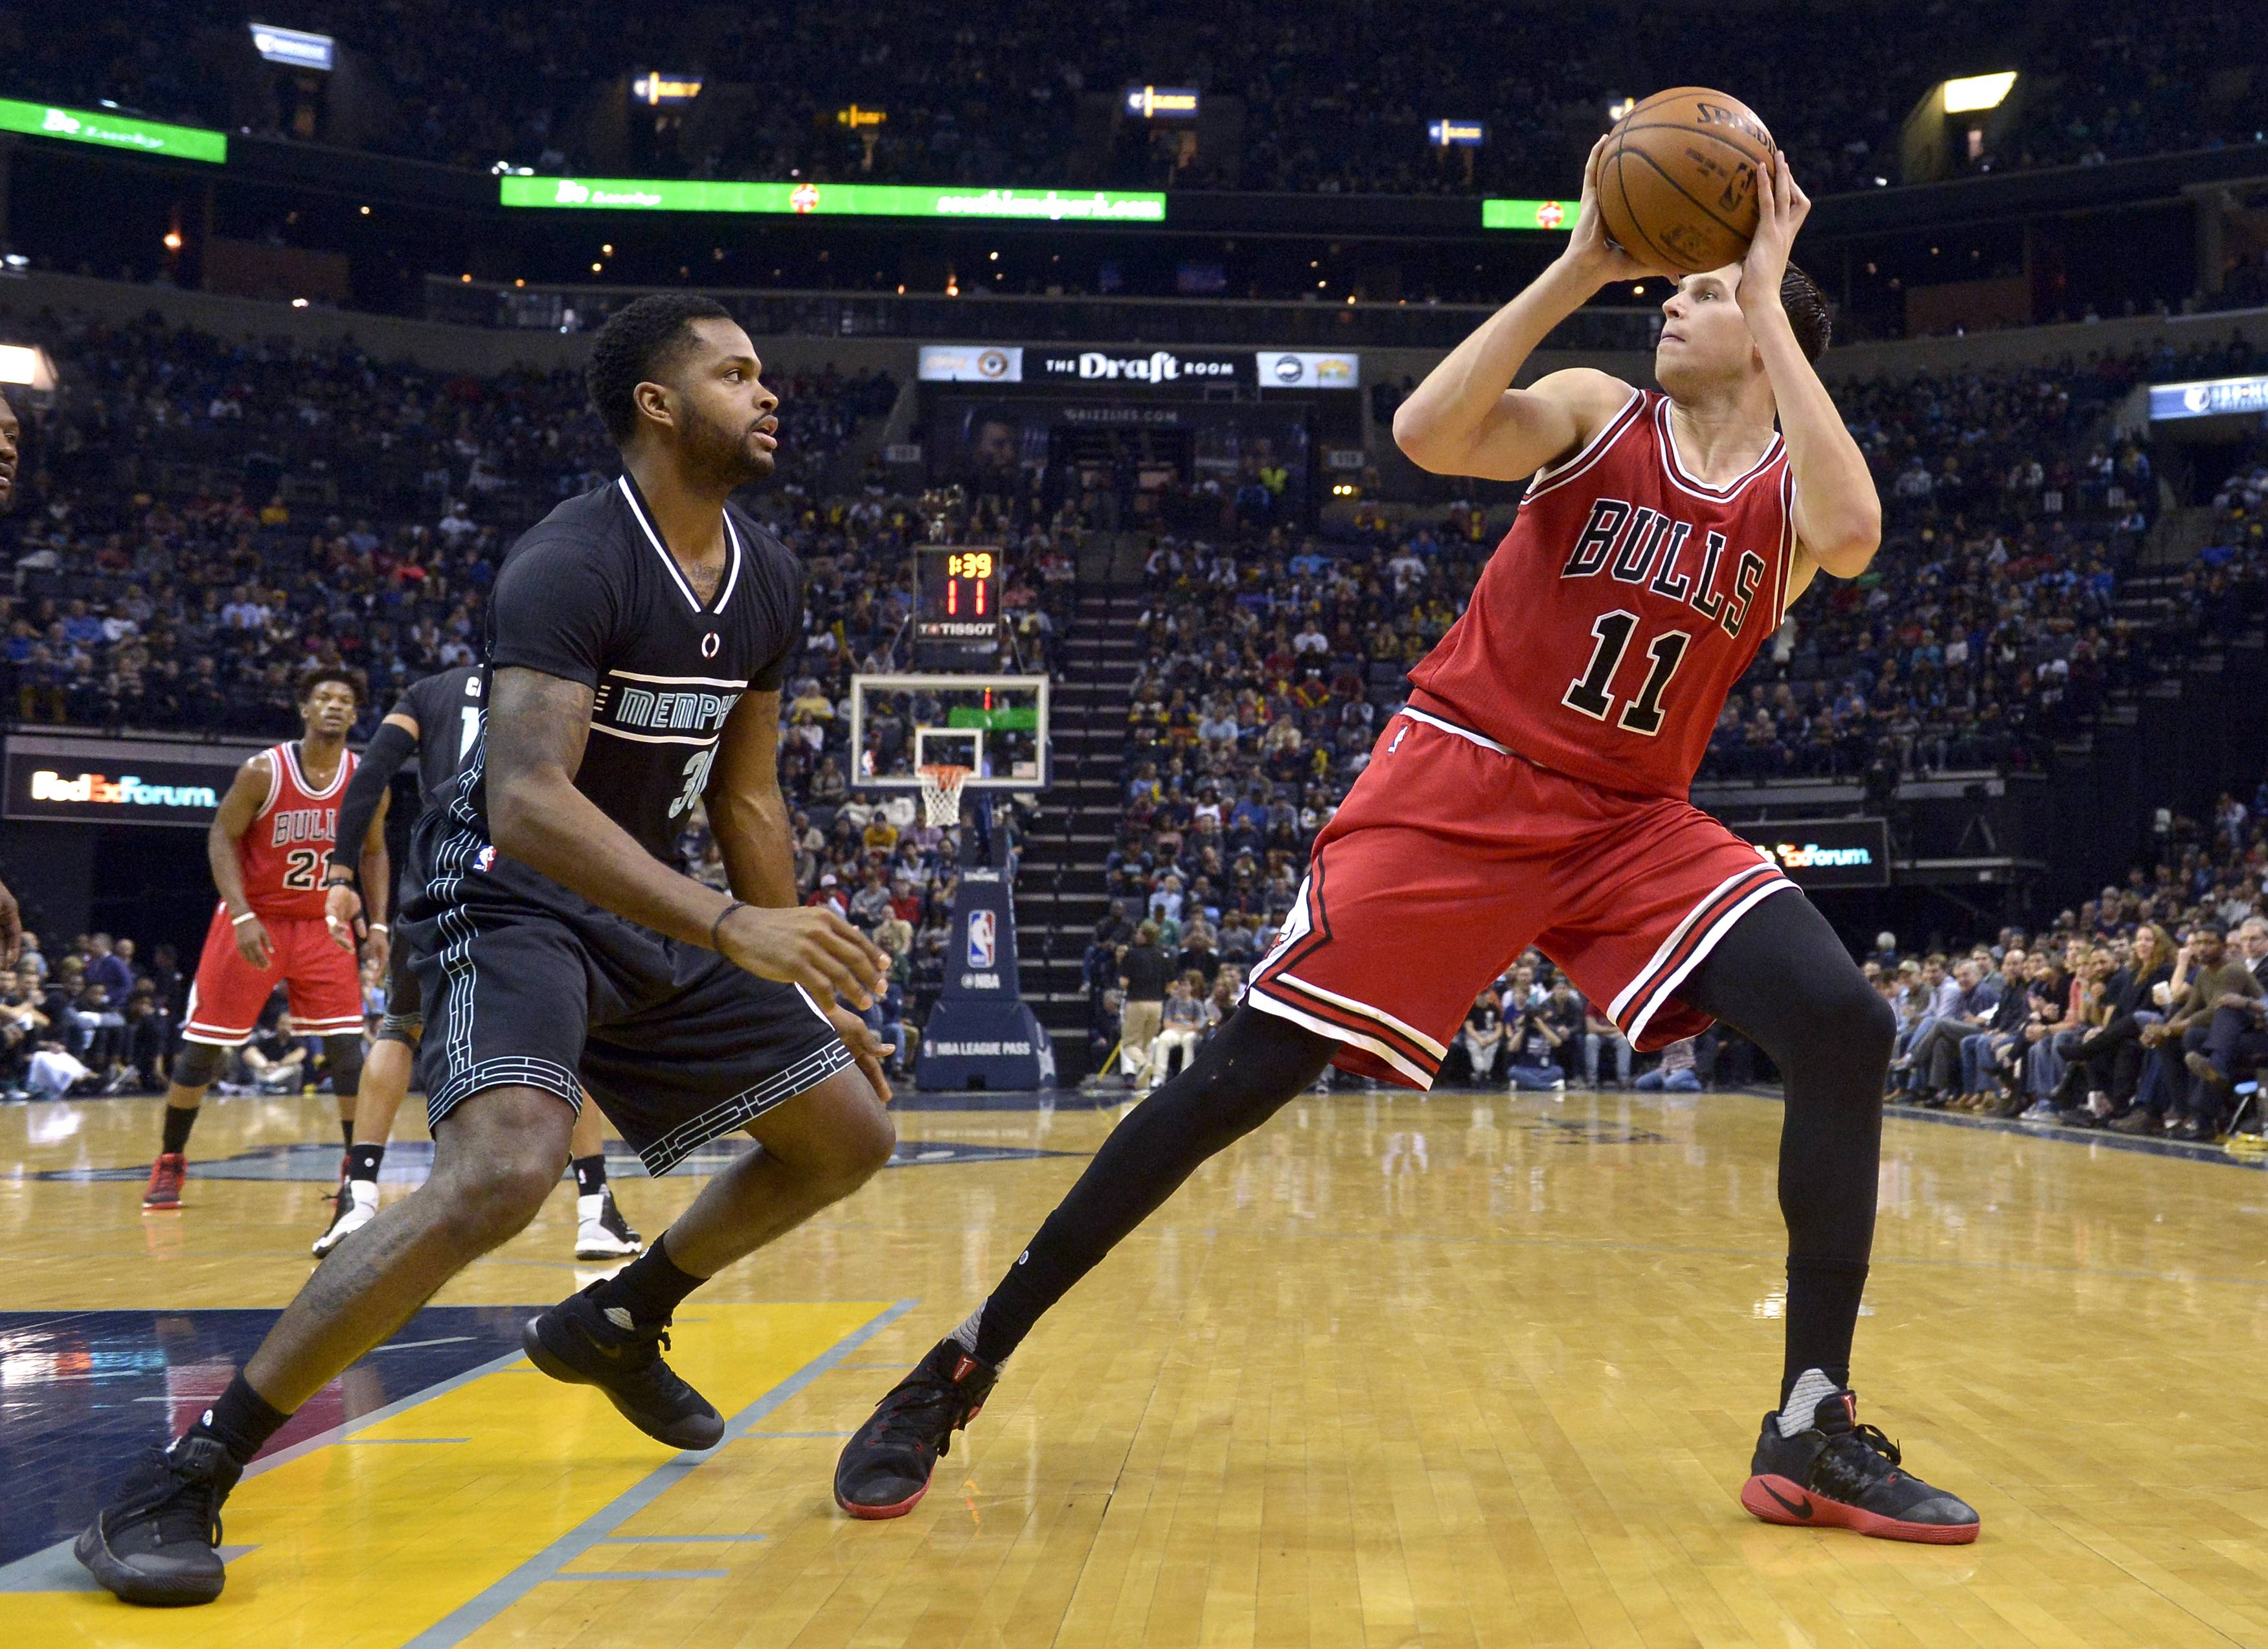 Bulls forward Doug McDermott turns to shoot against Grizzlies guard Troy Daniels in the second half of Sunday's game in Memphis.